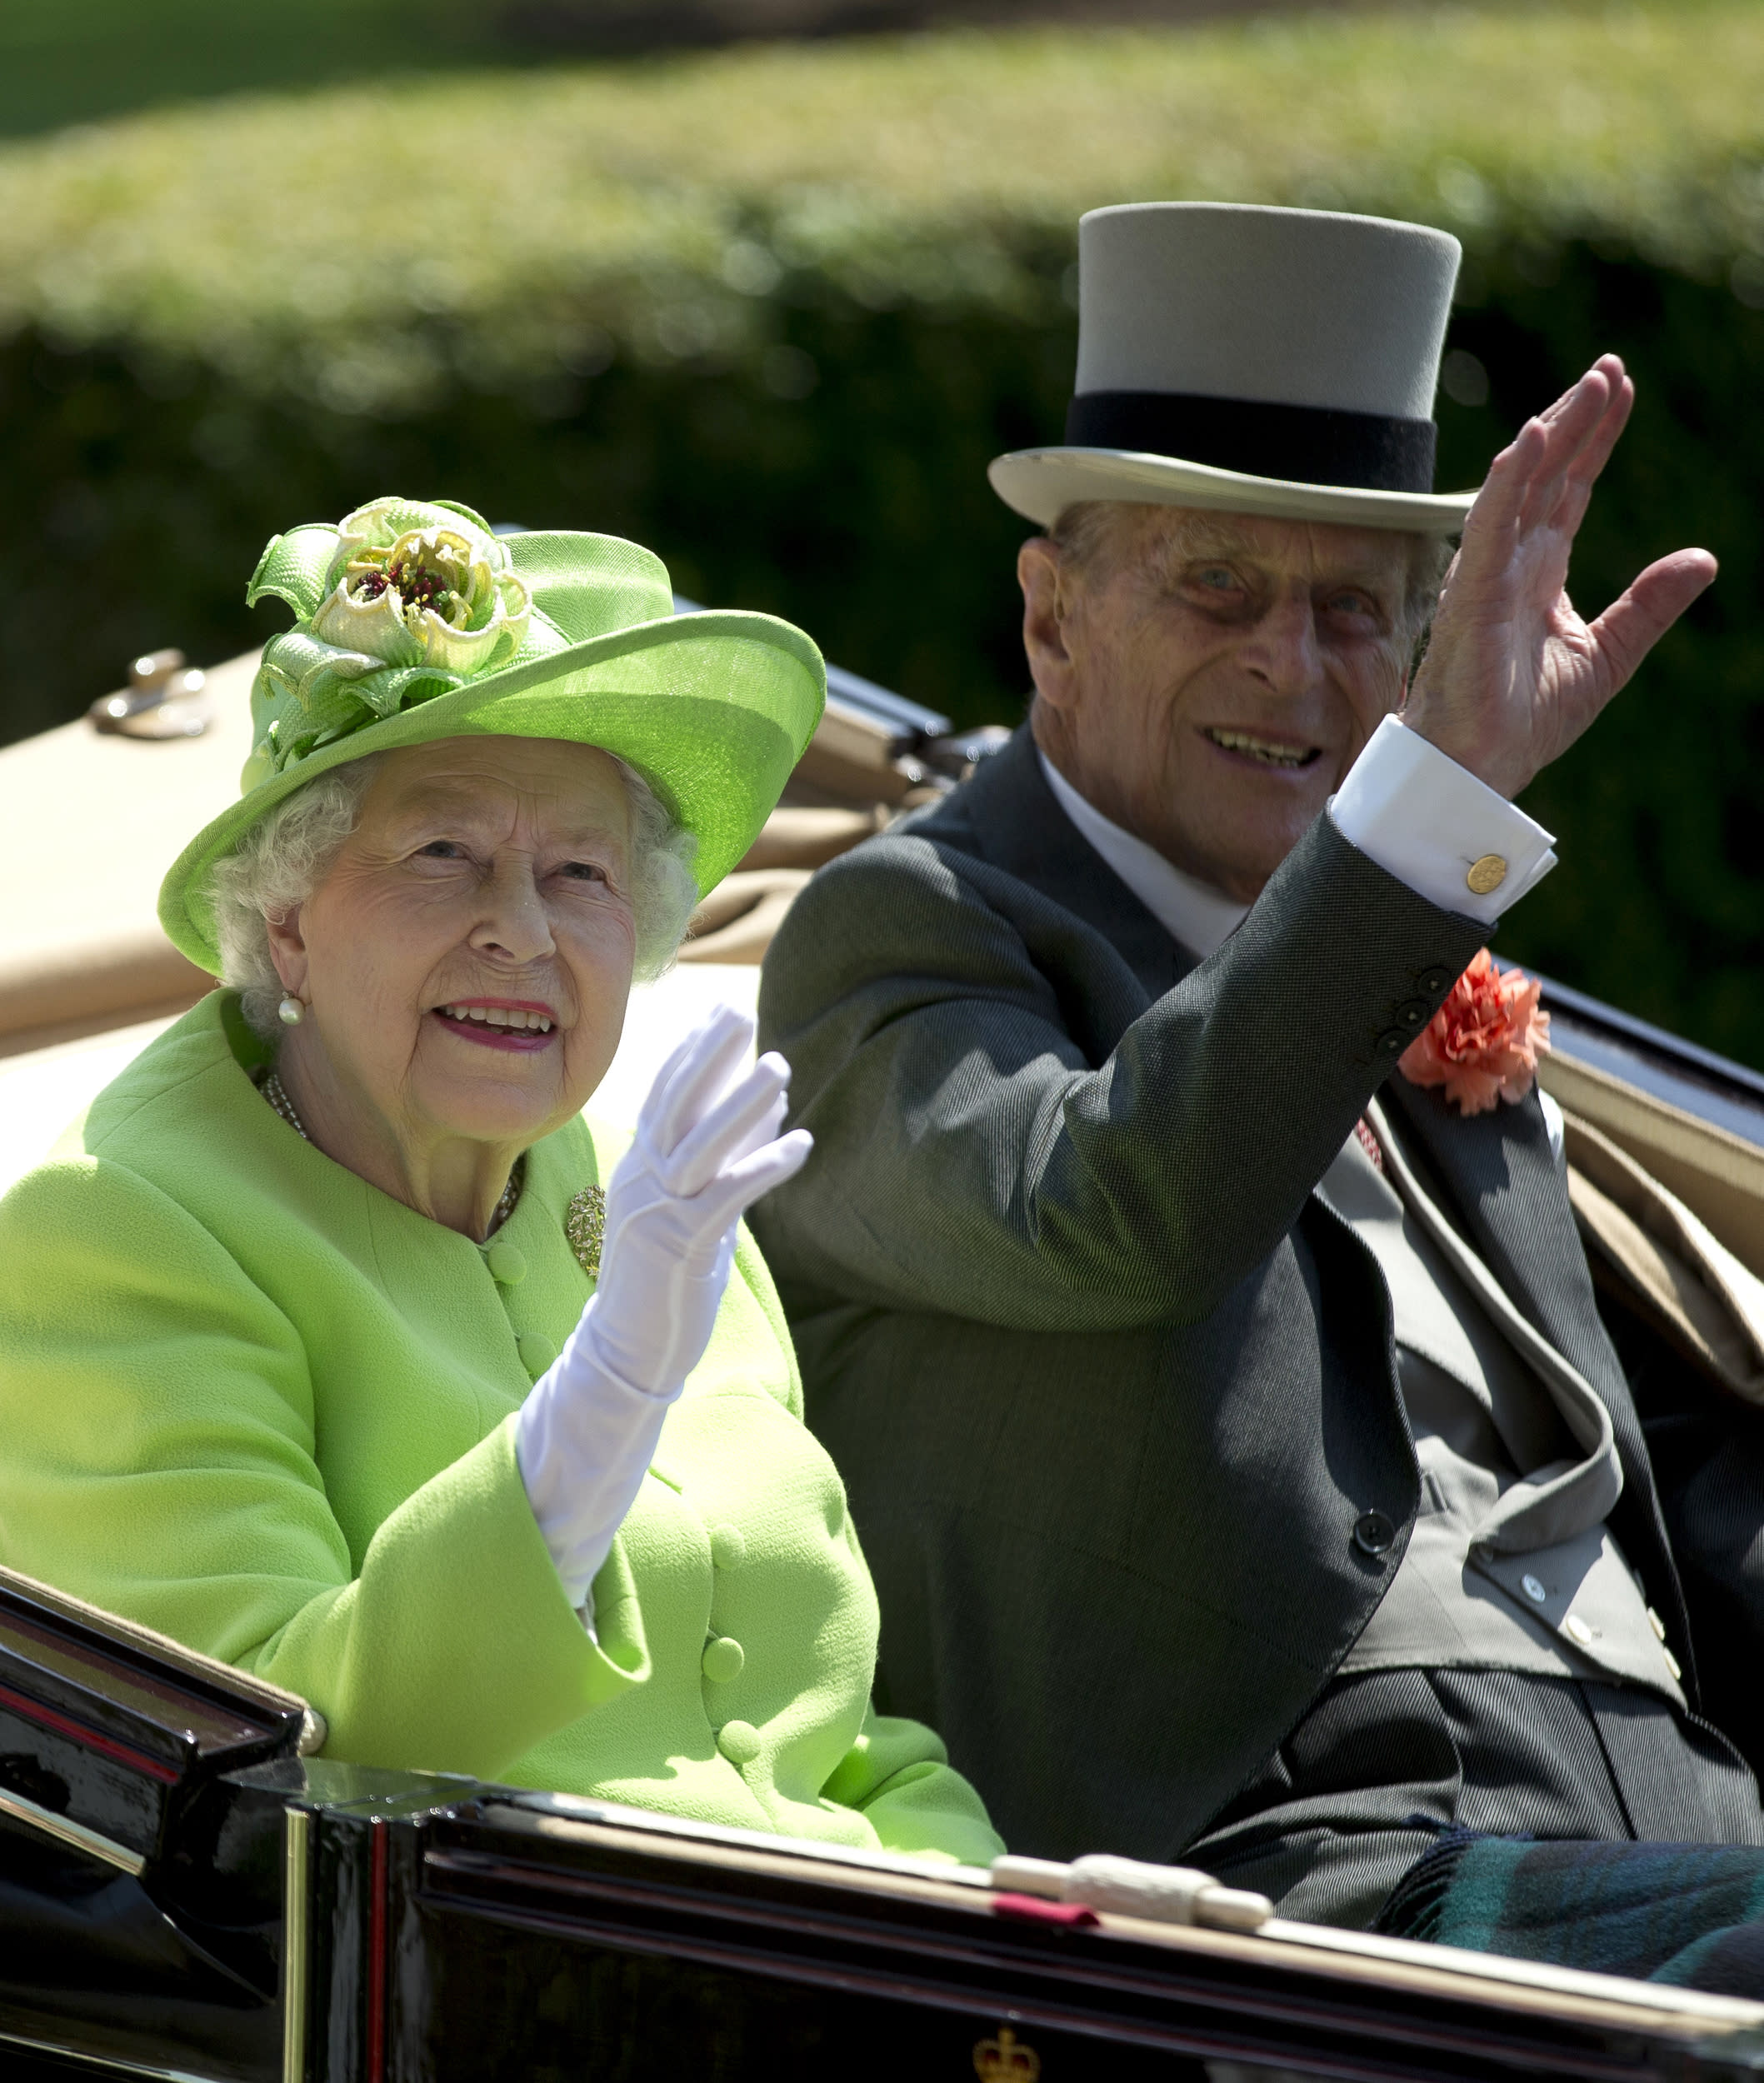 Britain's Queen Elizabeth II, waves to the crowd with Prince Philip at right, as they arrive by open carriage to the parade ring on the first day of the Royal Ascot horse race meeting in Ascot, England, Tuesday, June 20, 2017. (AP Photo/Alastair Grant)